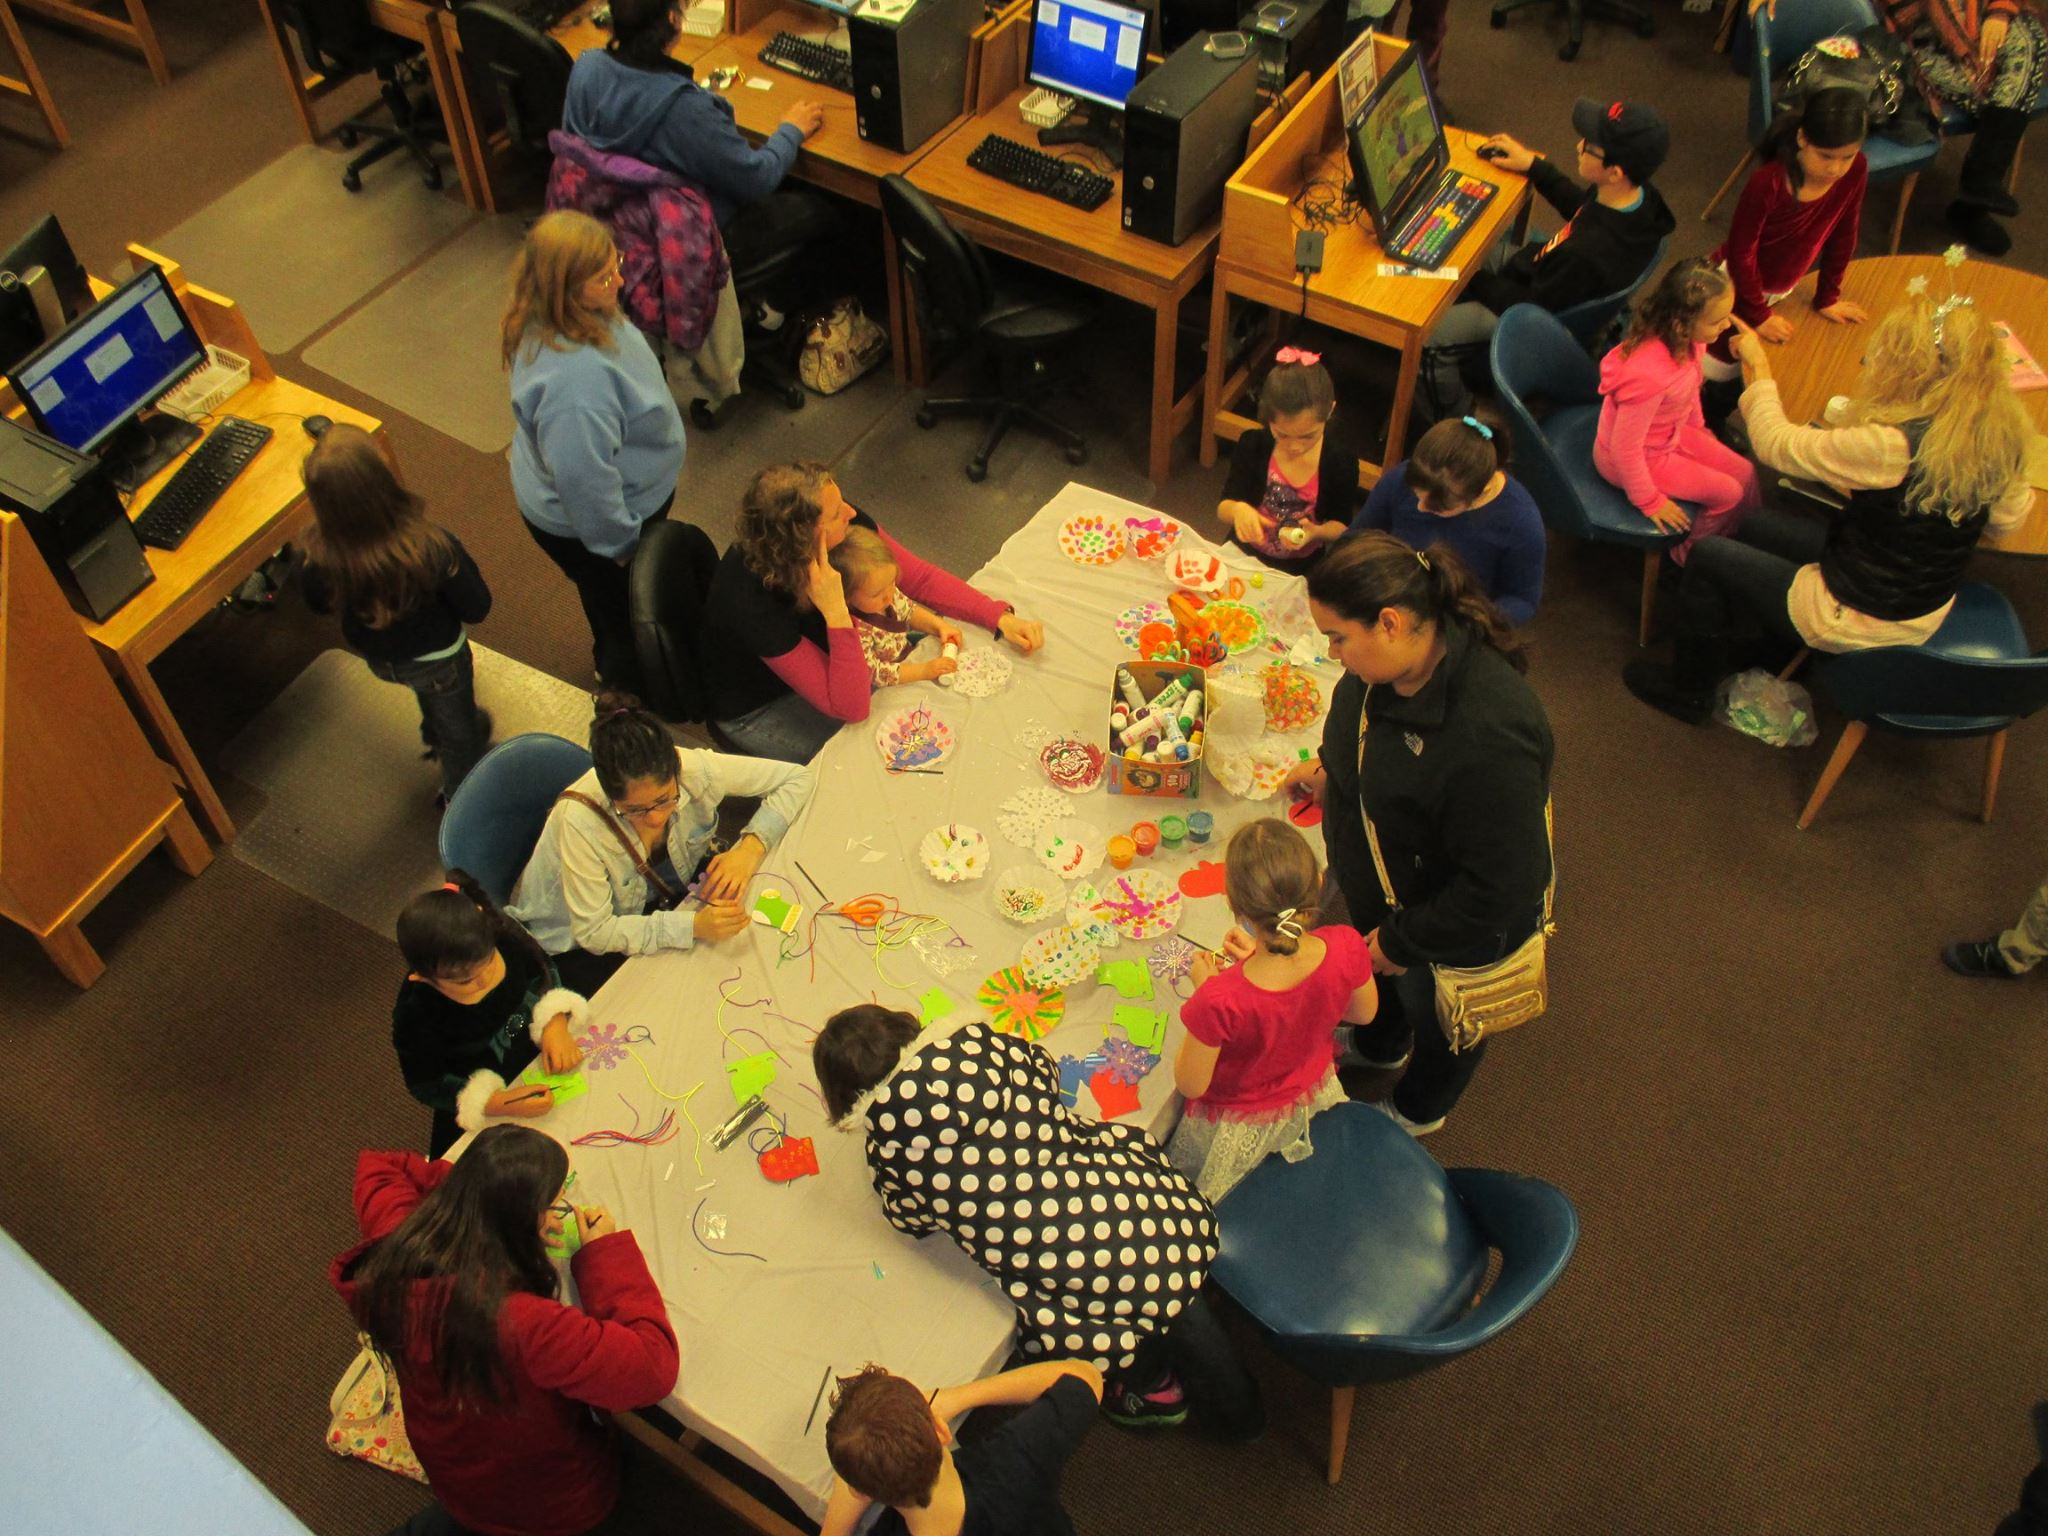 family-night-wednesdays-the-dalles-pblic-community-library.jpg